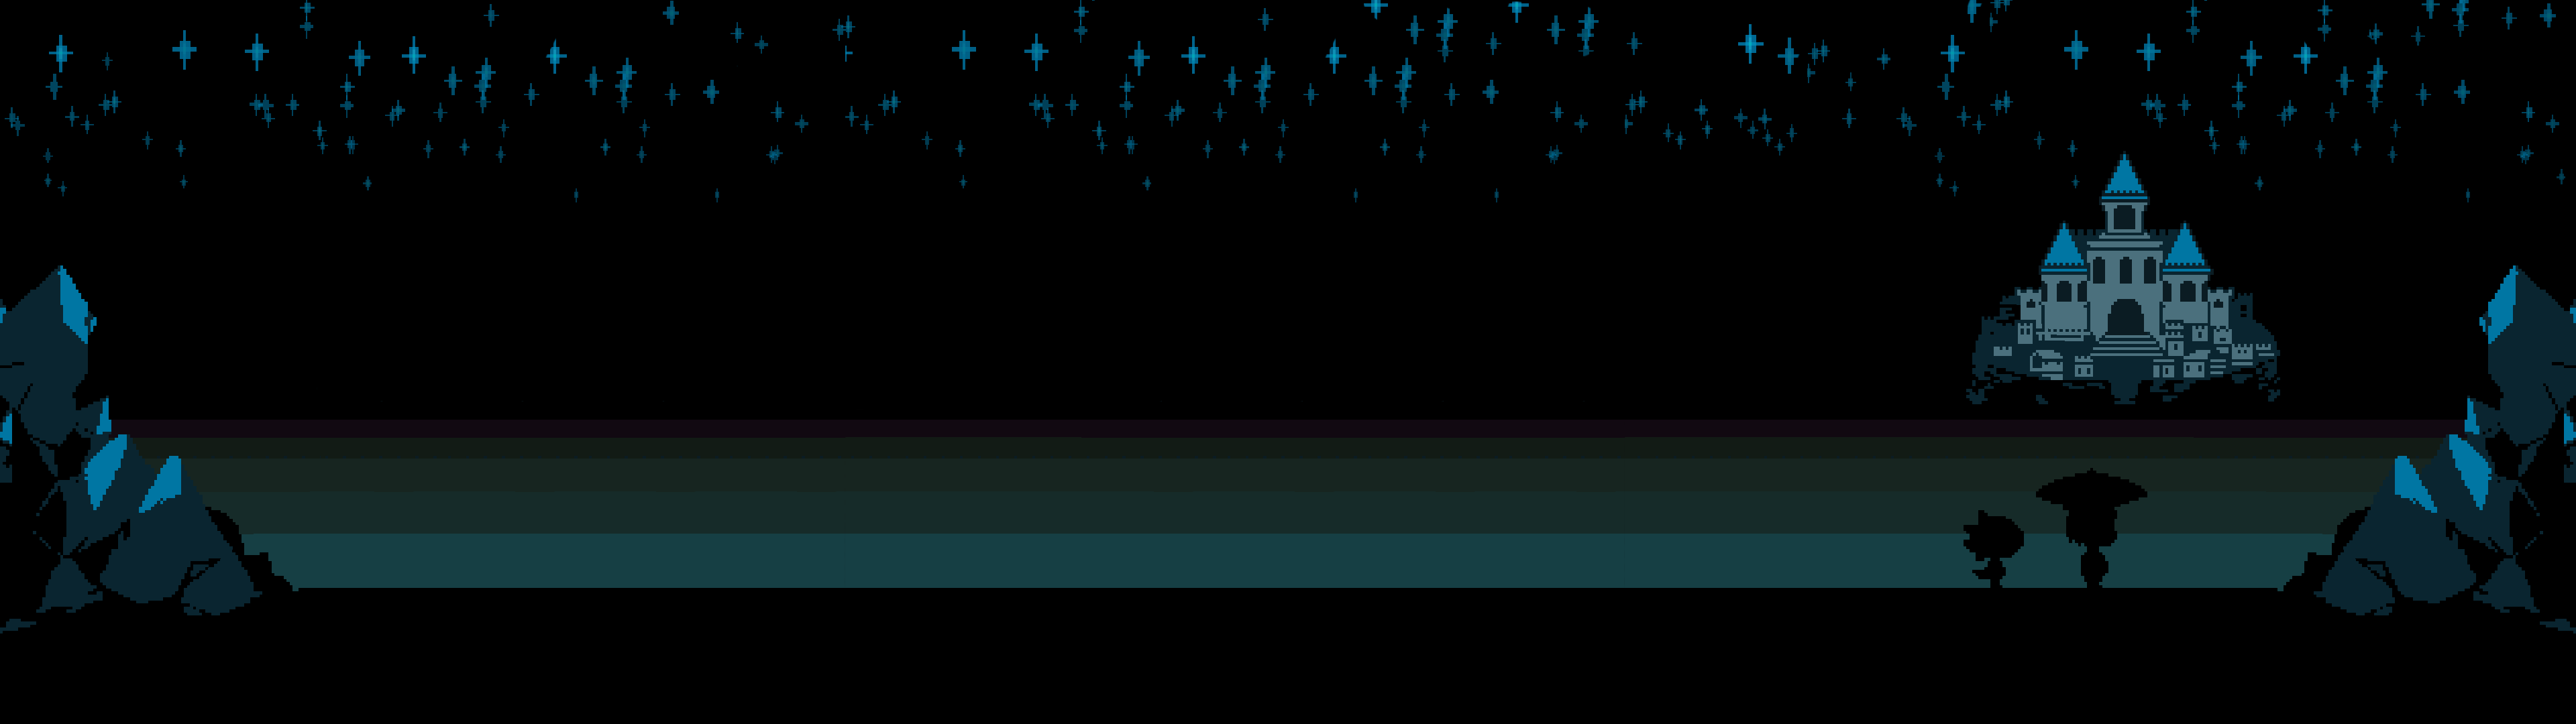 Made A Dual Screen Wallpaper Out Of My F 979790 Png